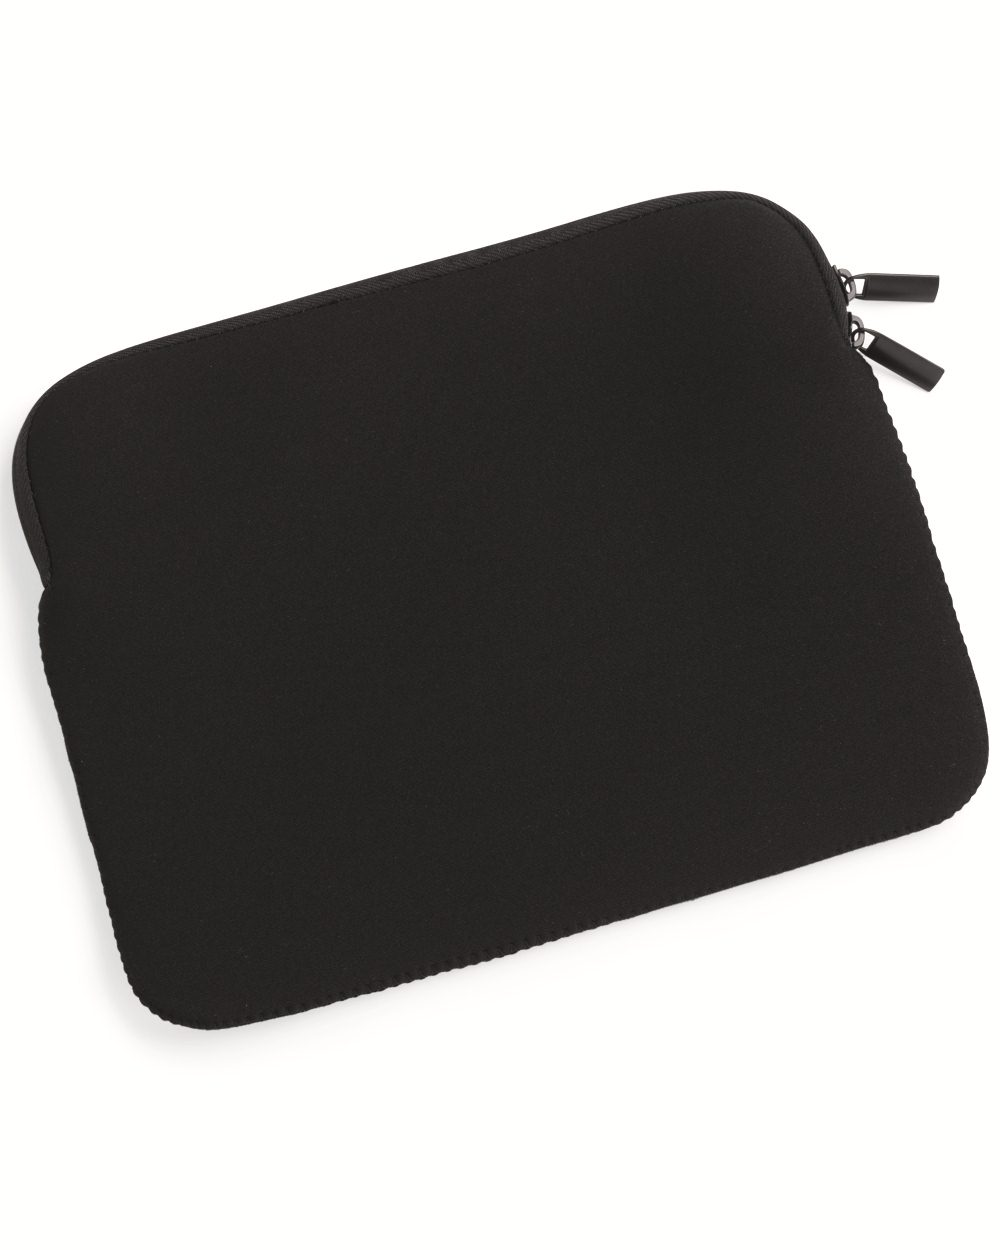 Liberty Bags Neoprene Tablet Holder - 1709